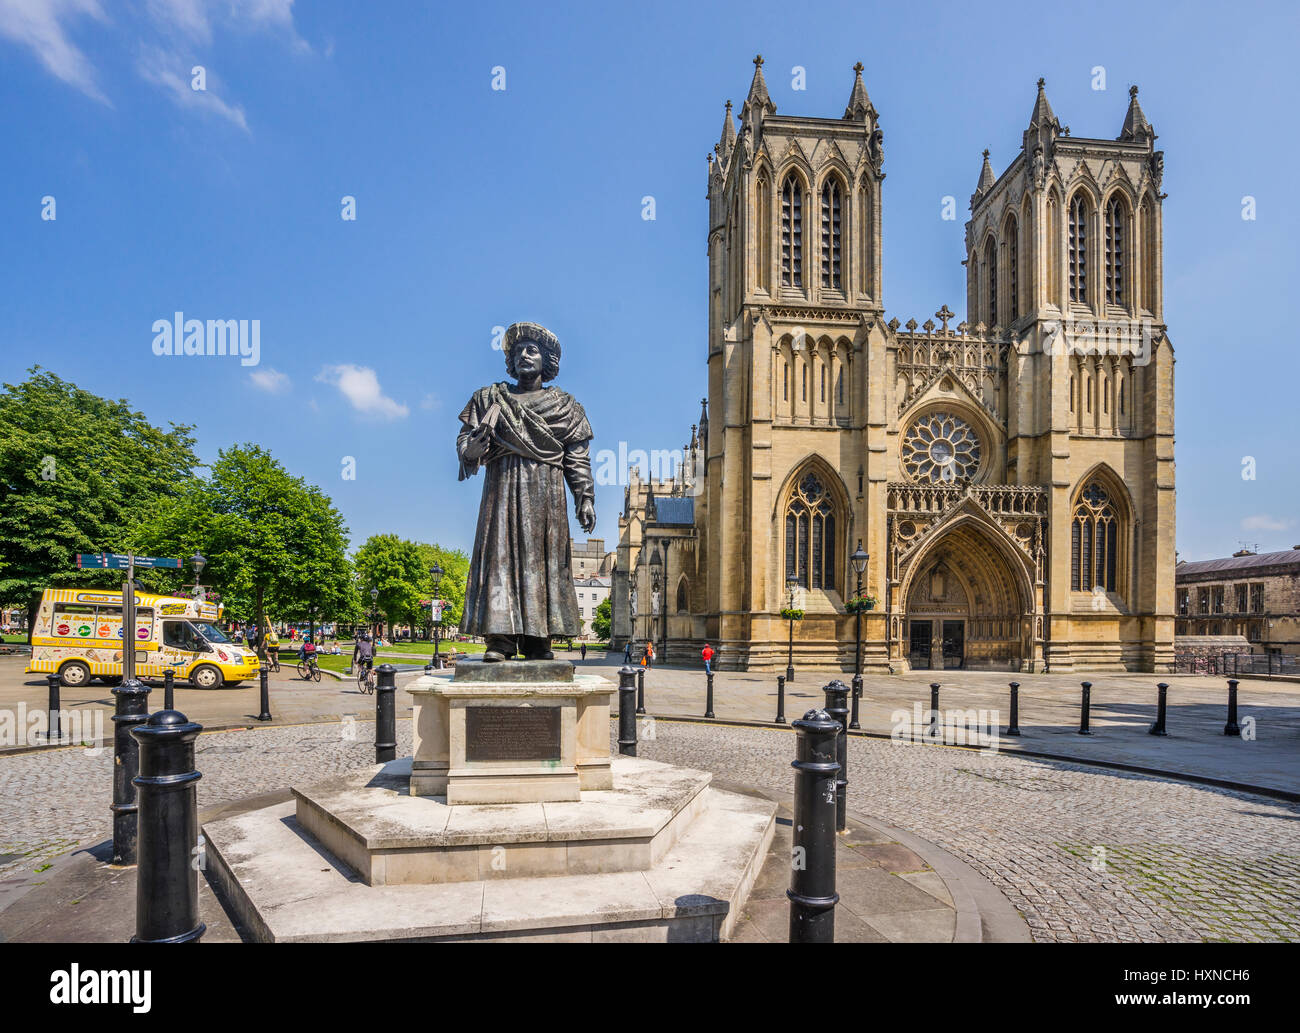 United Kingdom, South West England, Bristol, statue of Ram Mohan Moy, the Father of the Indian Renaissance at Bristol - Stock Image